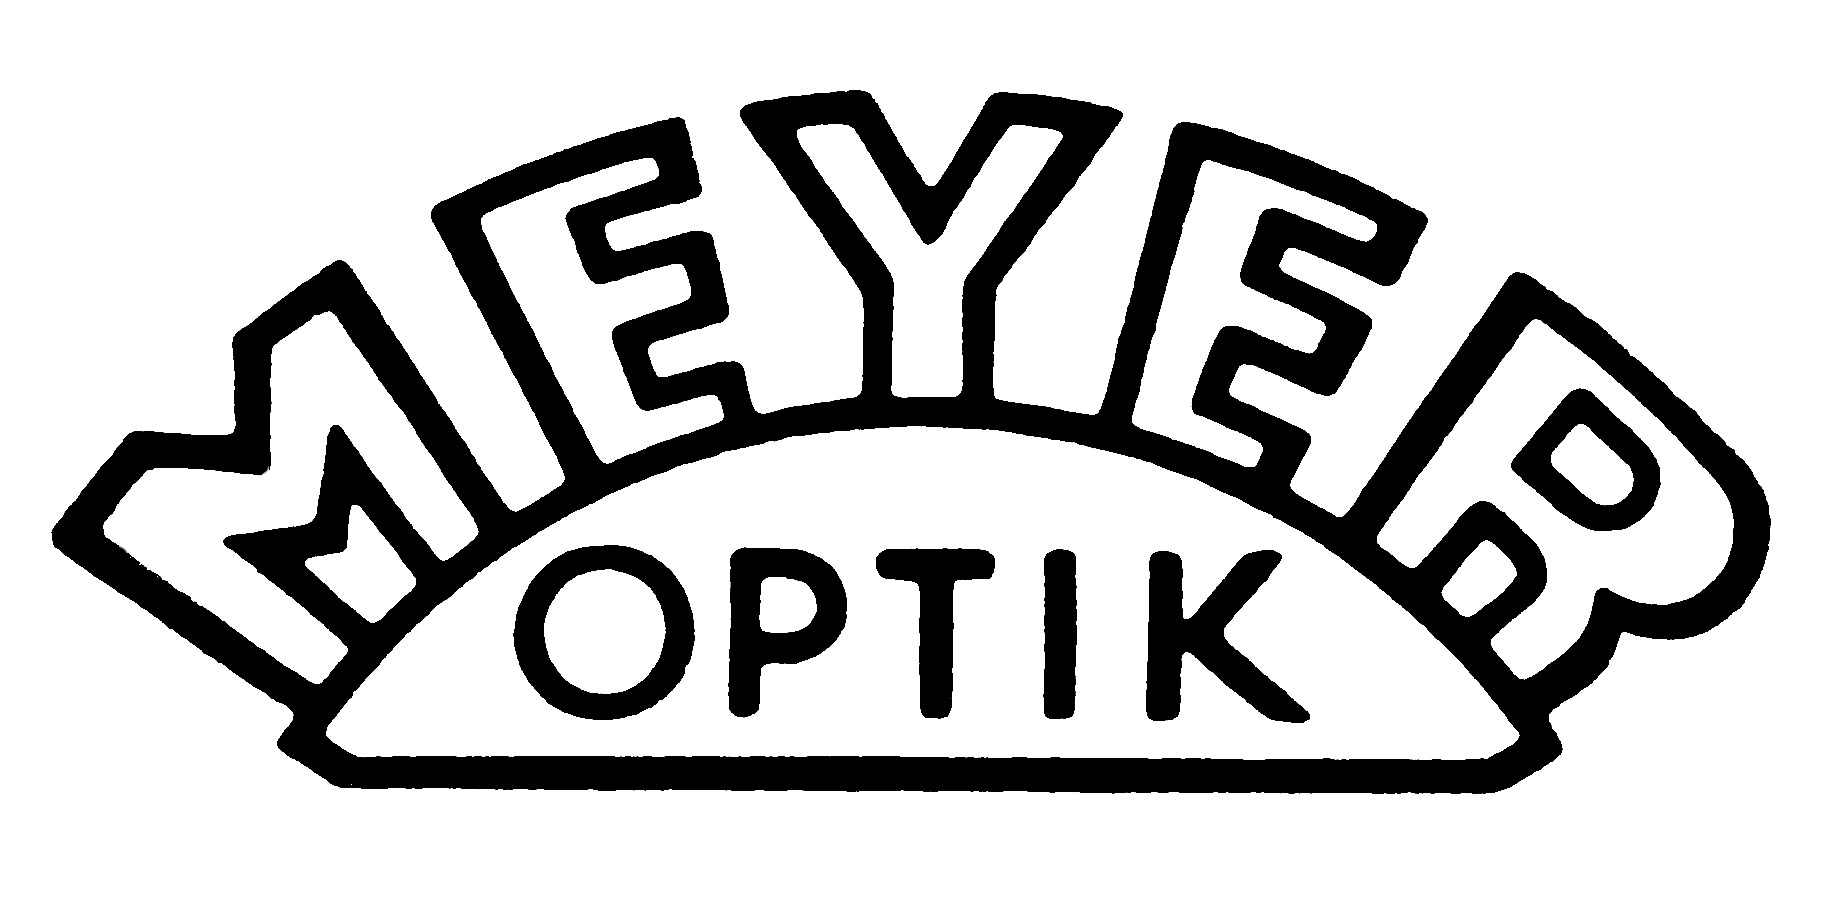 Meyer-Optik Logo